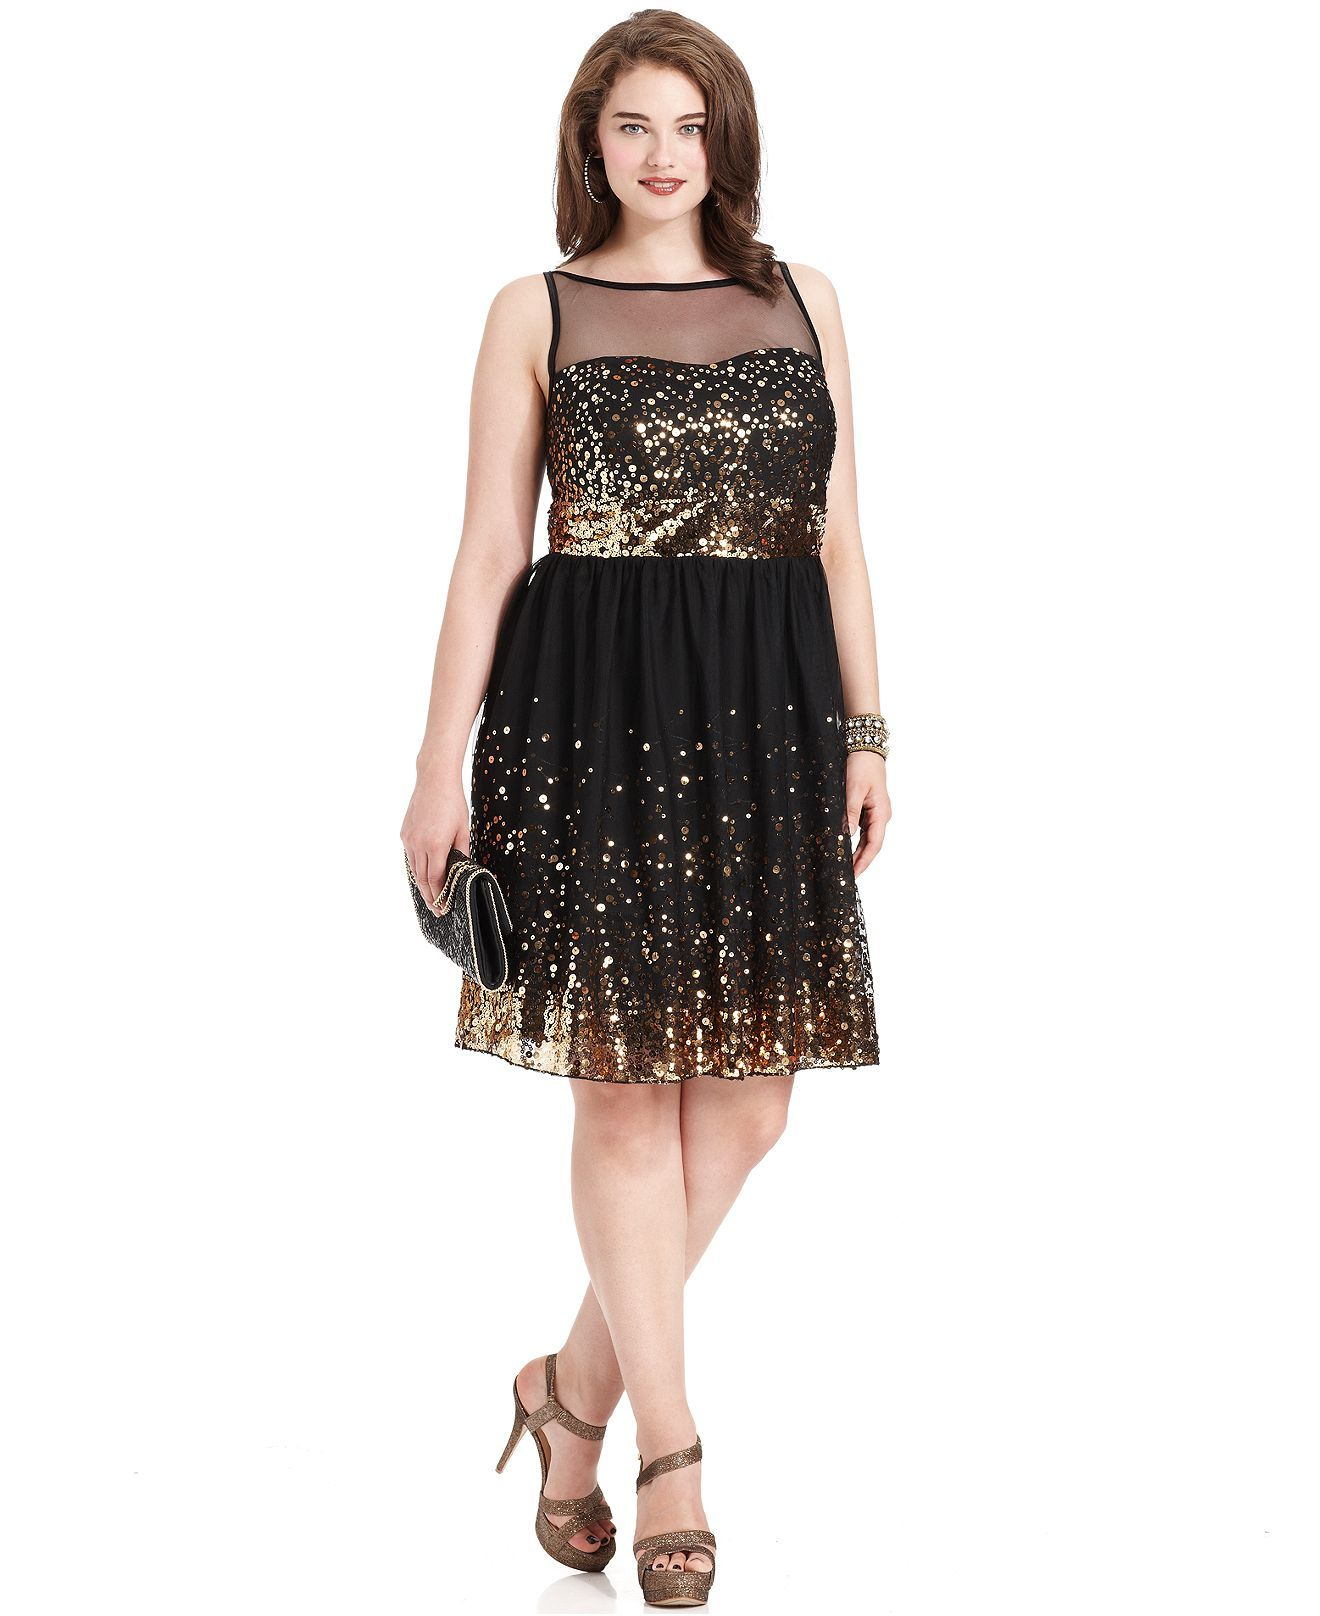 c823af269fd Ruby Rox Plus Size Dress